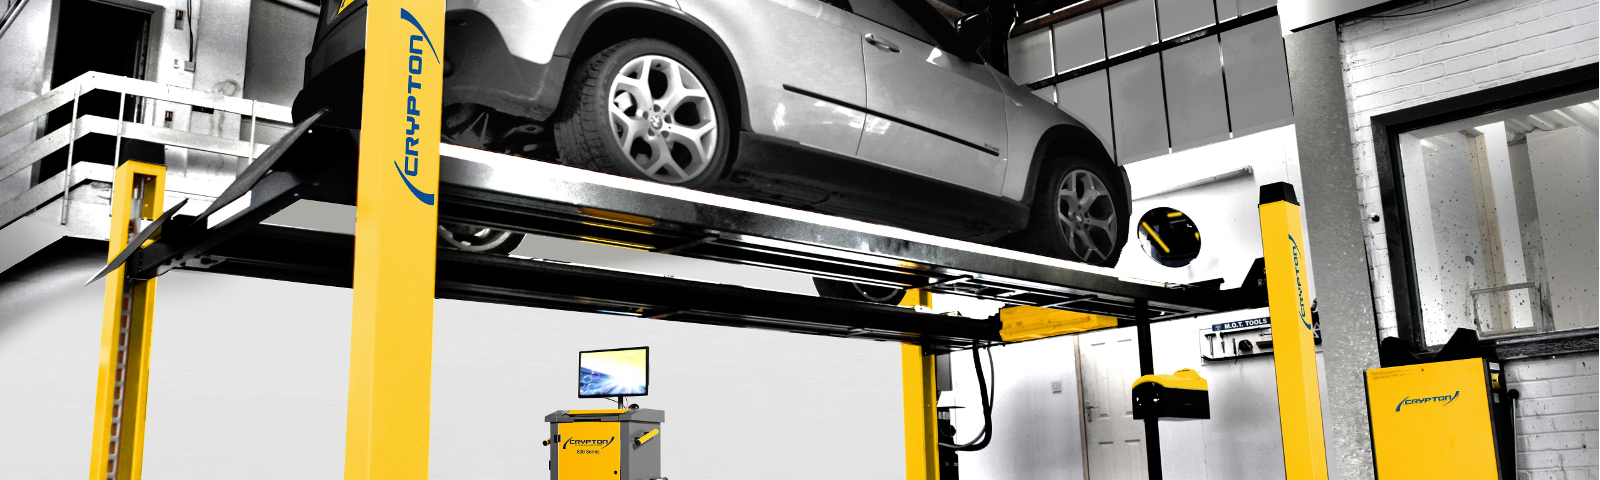 MOT Equipment Sales, Service & Calibration